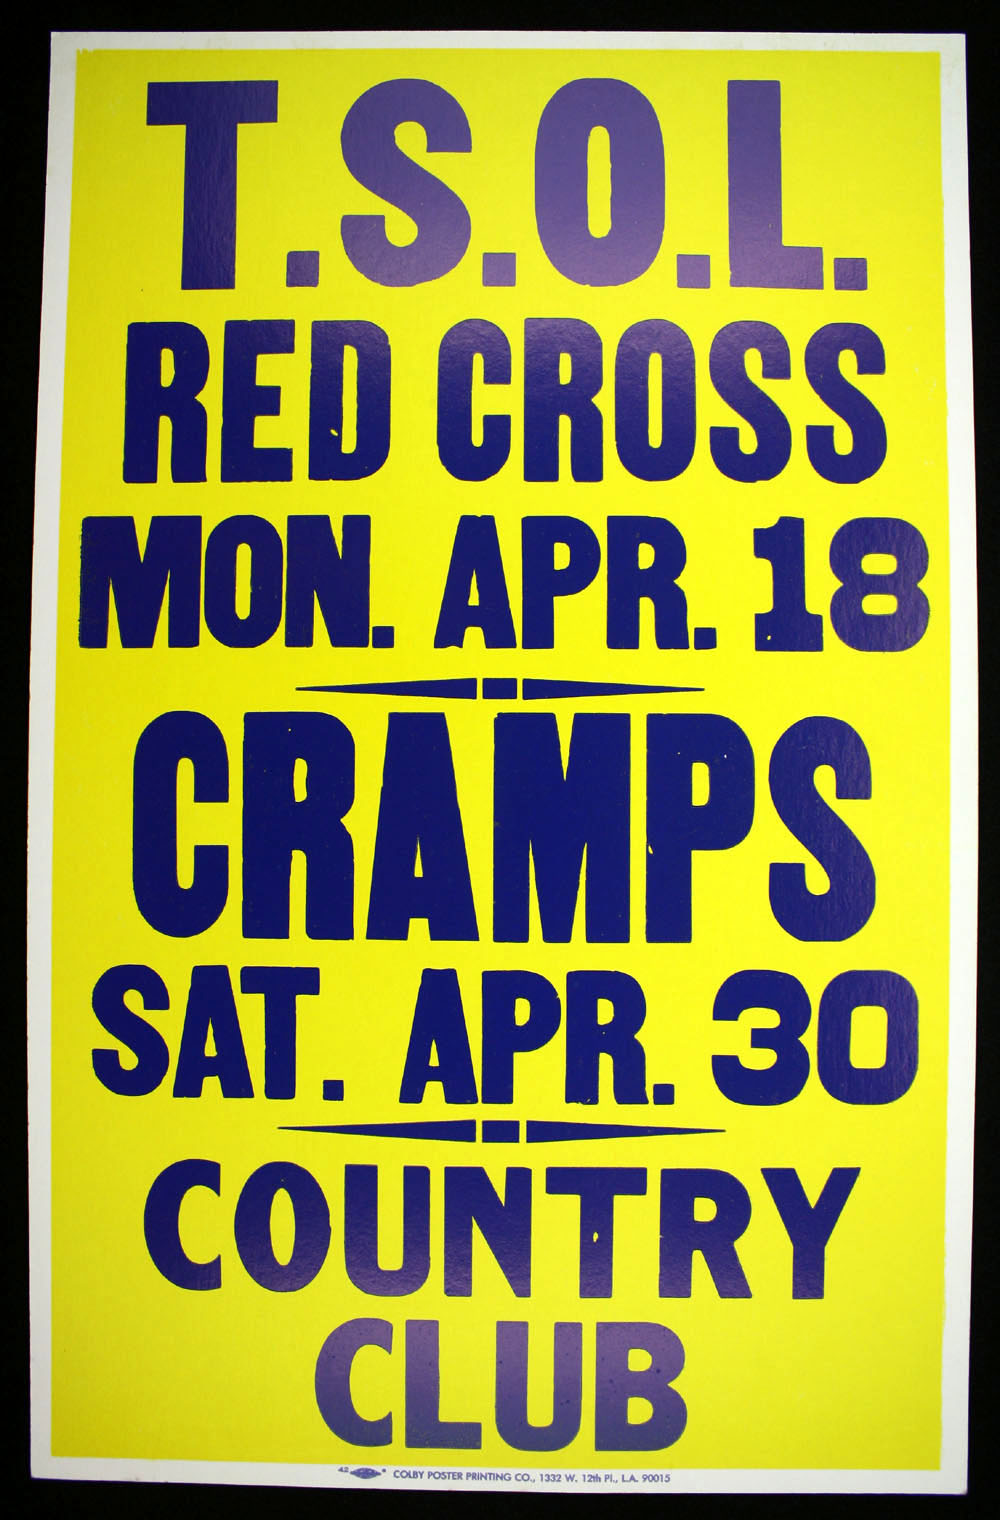 TSOL w/ Red Cross + CRAMPS at the Country Club BOXING STYLE POSTER